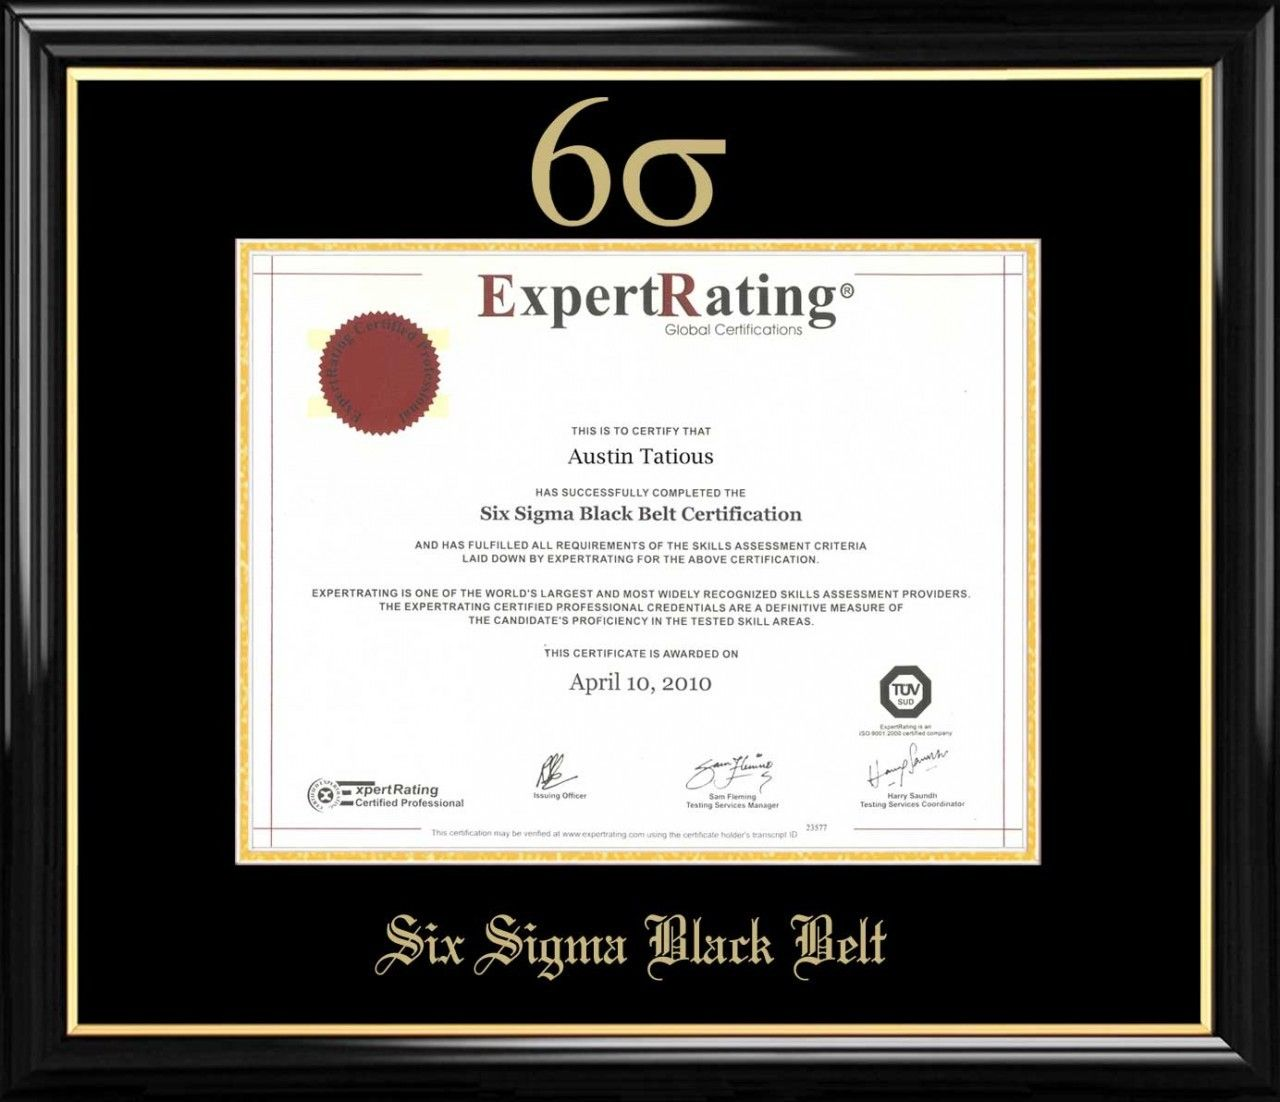 Six Sigma Black Belt Certificate Frame Black with Black Mat ...